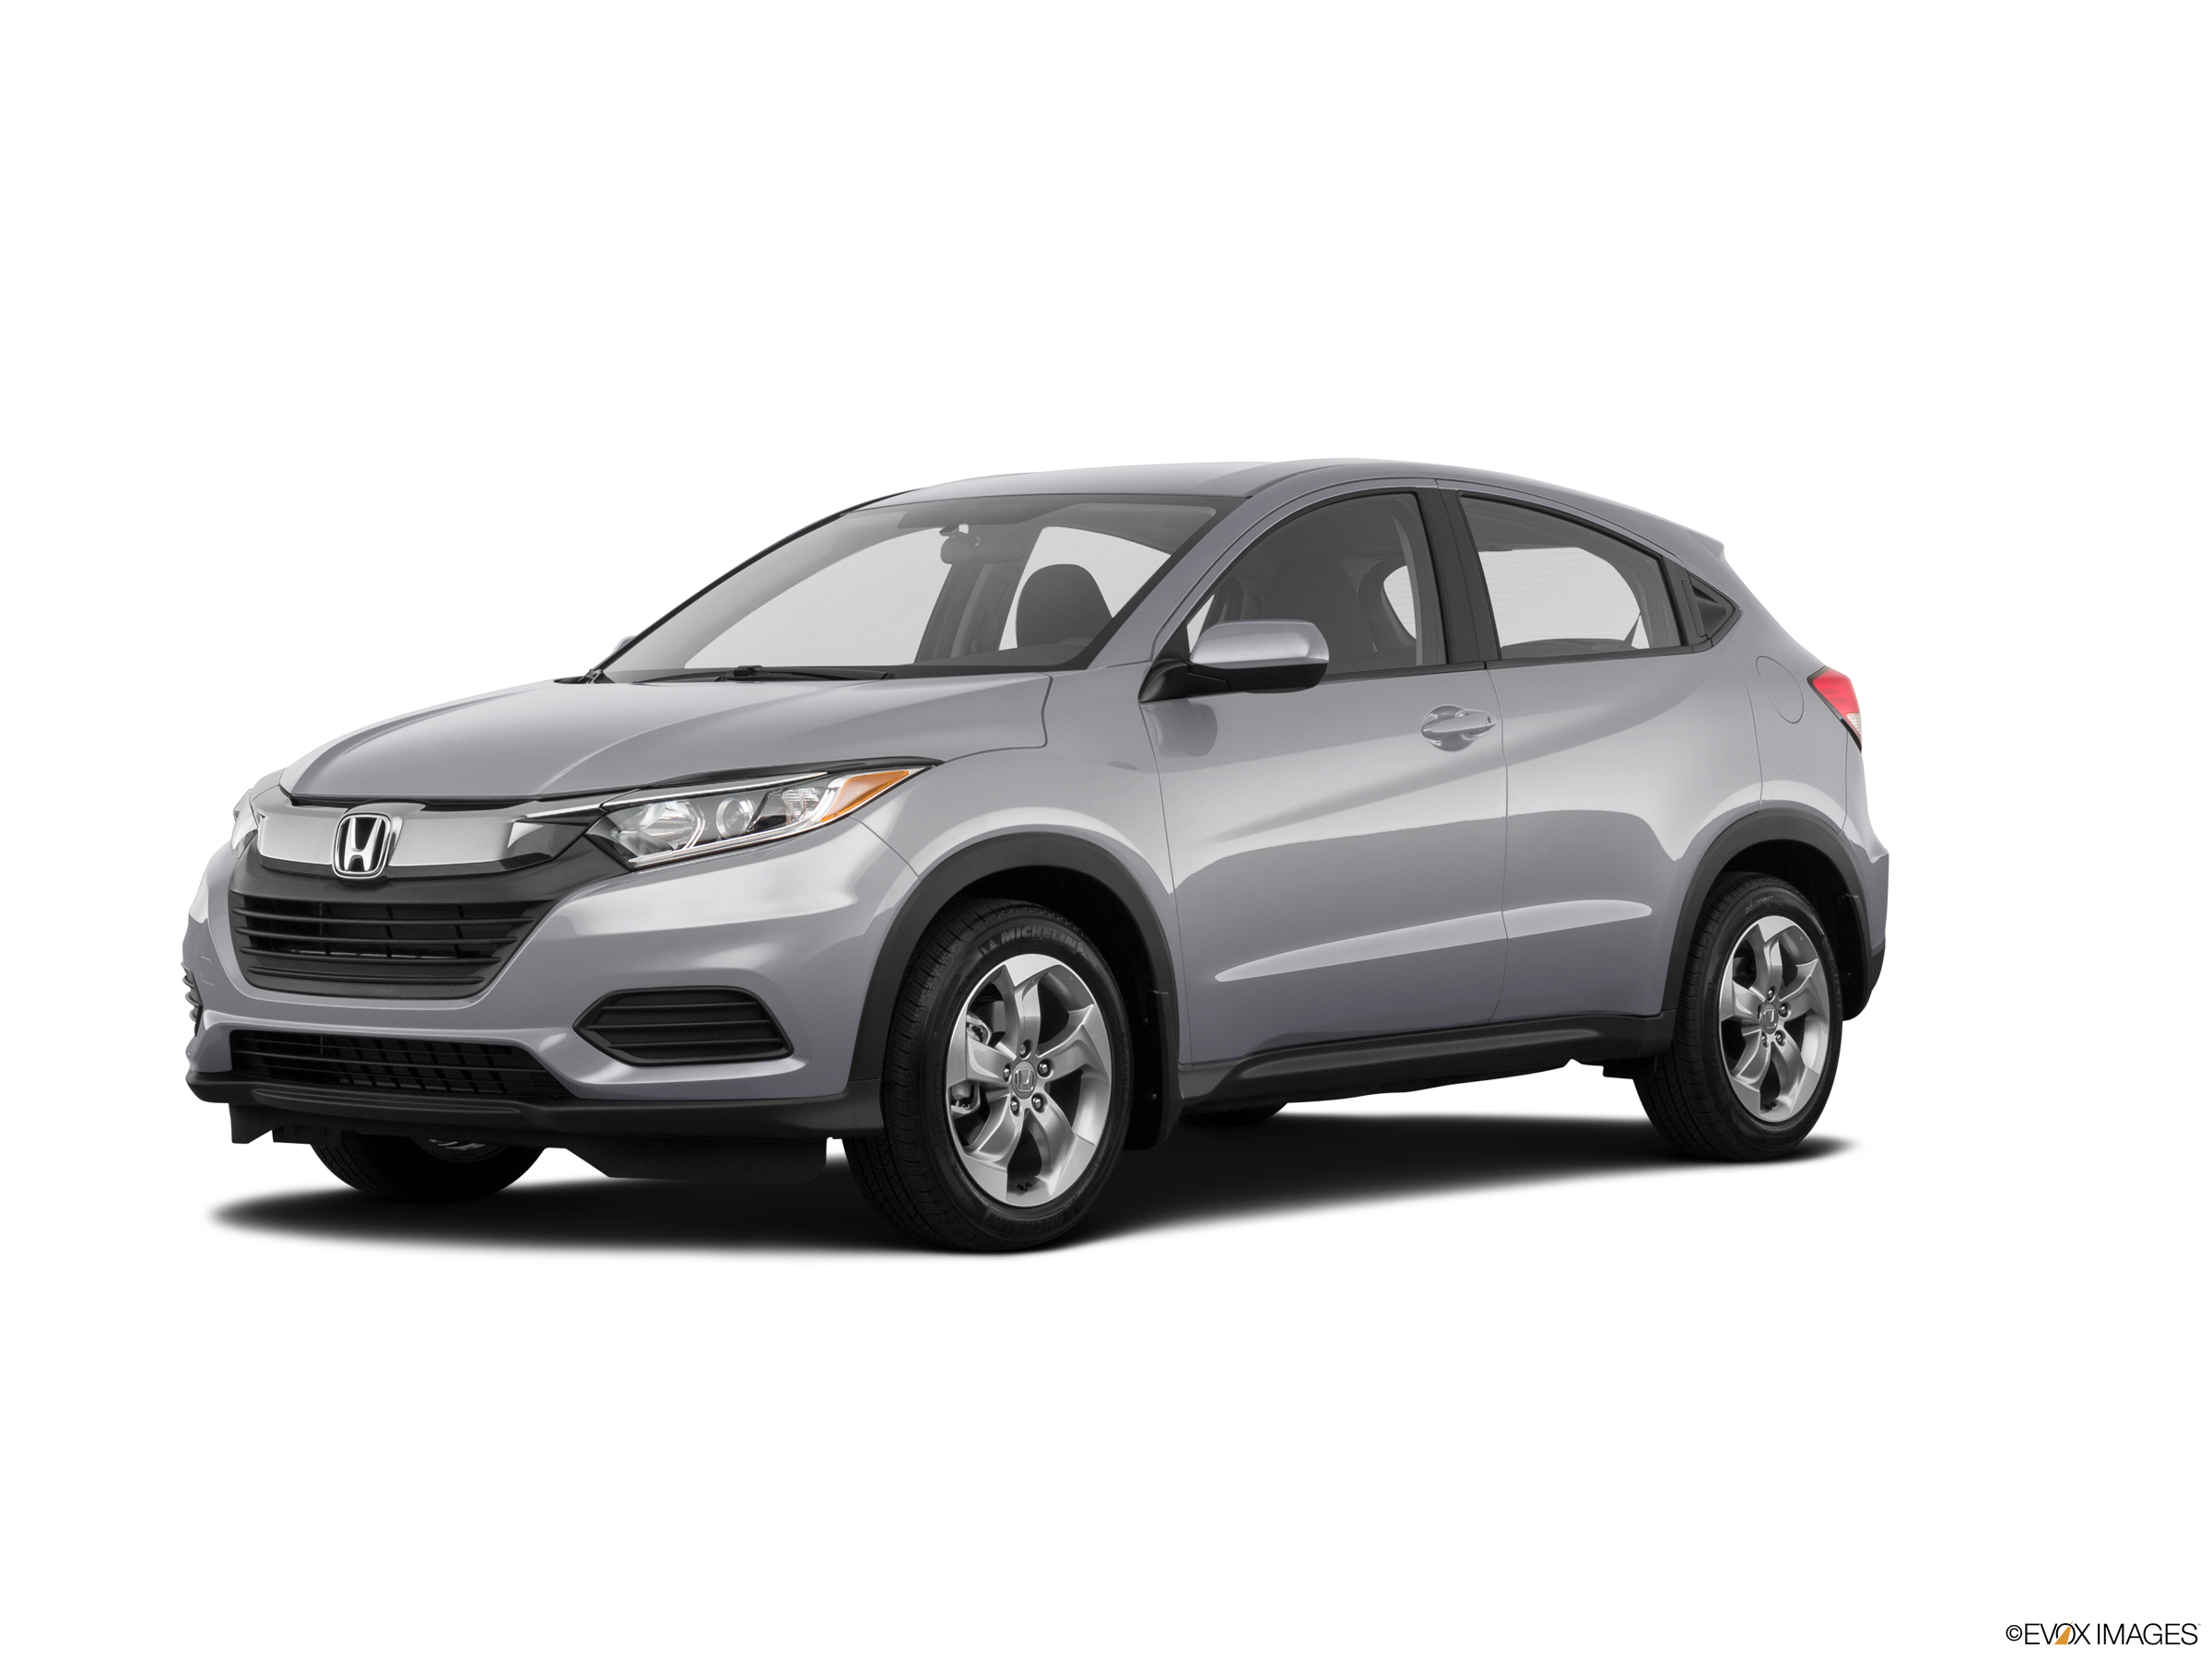 Top Expert Rated Crossovers of 2019 - 2019 Honda HR-V